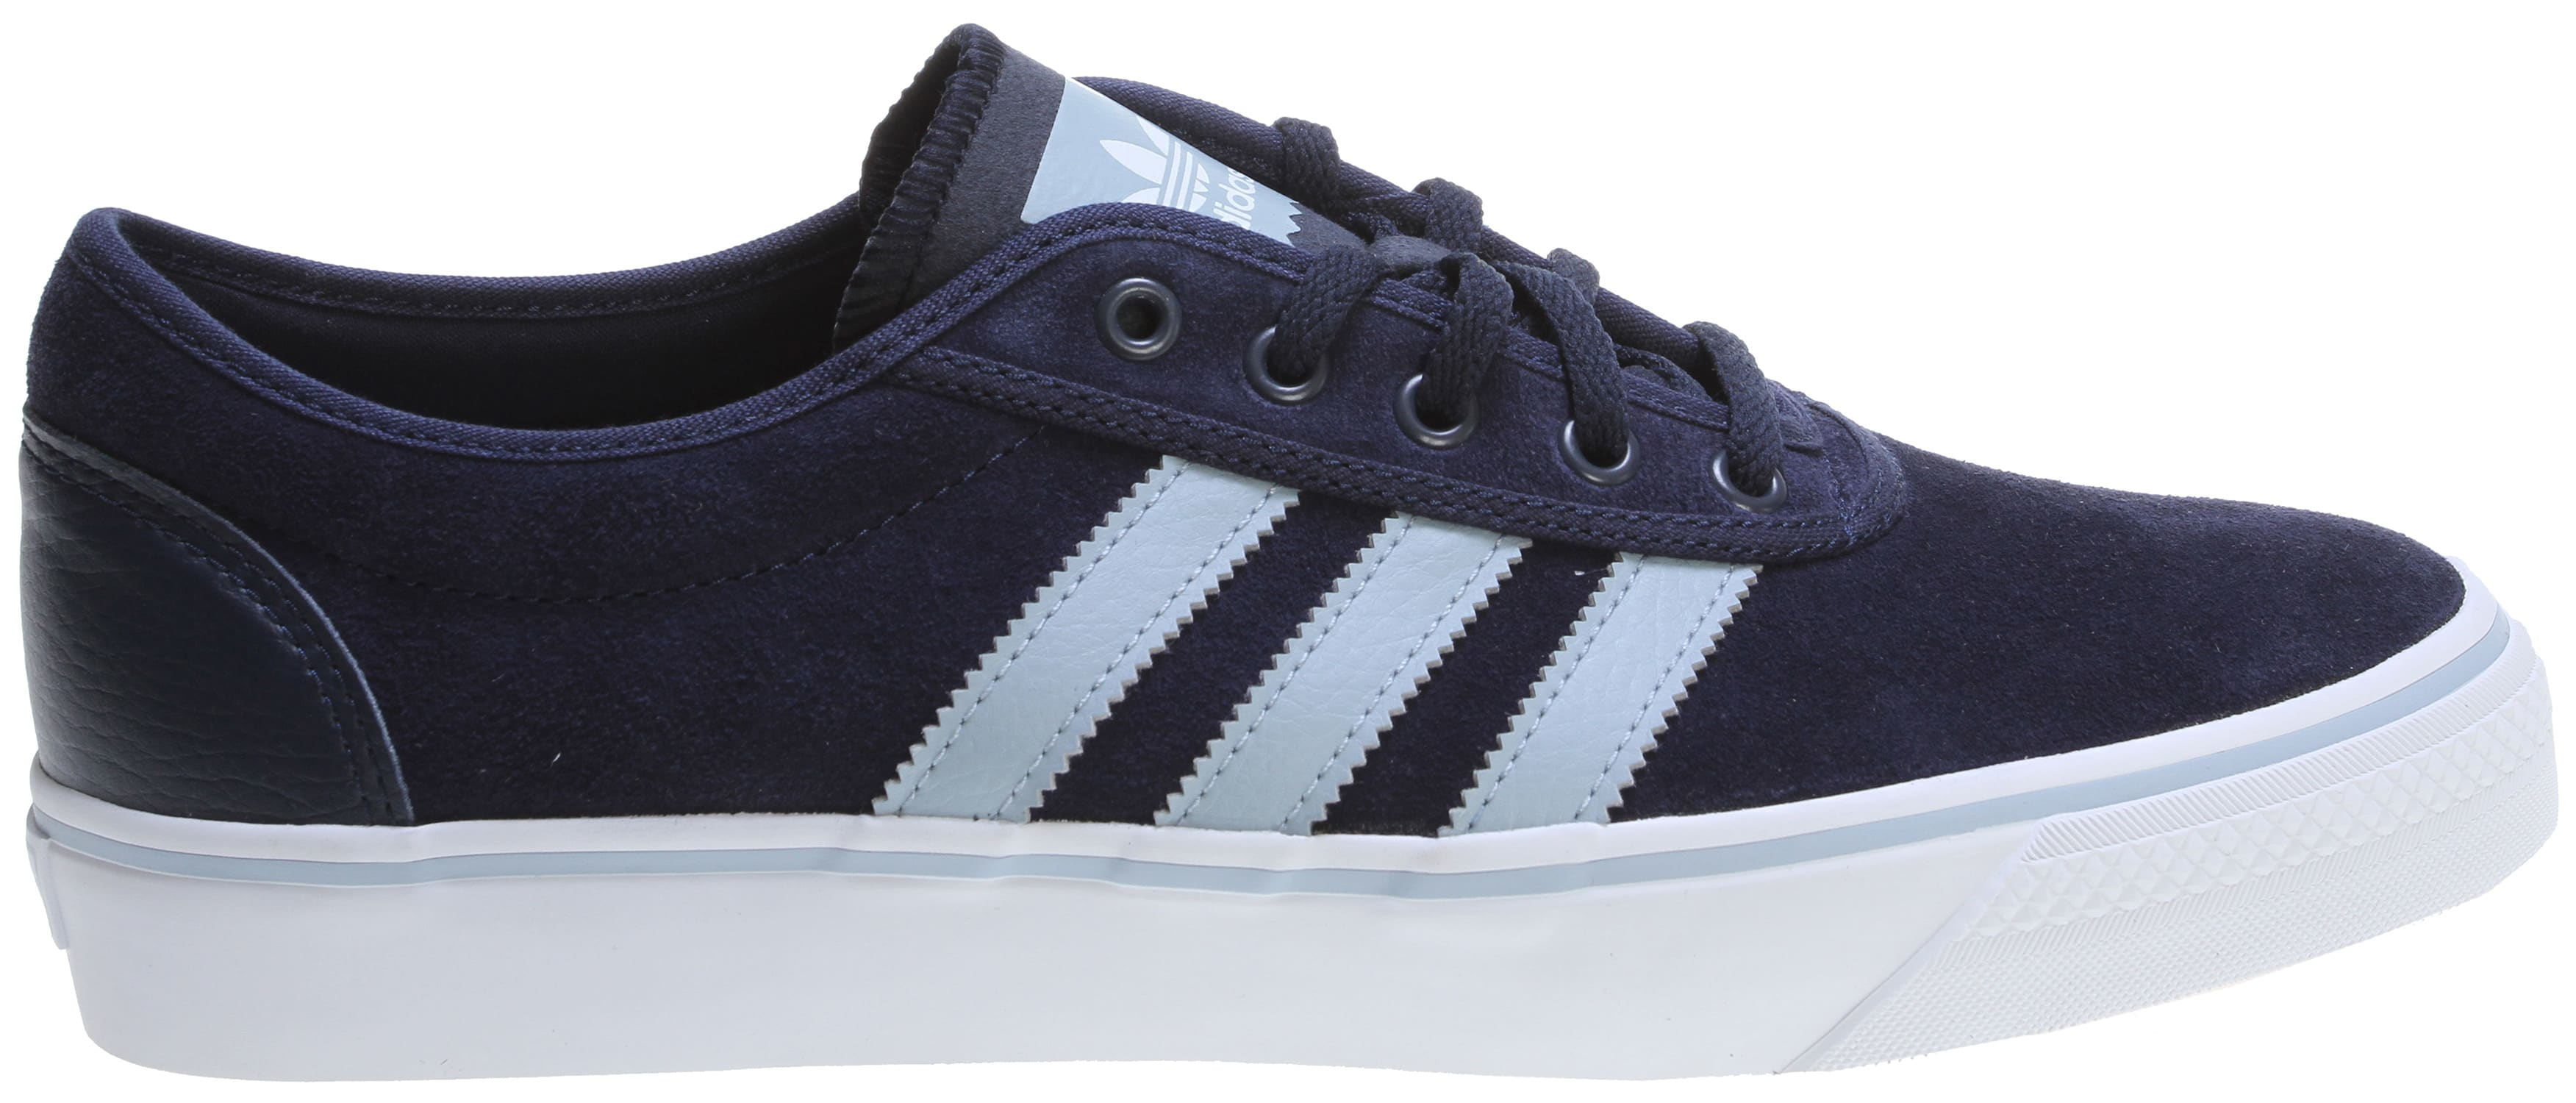 finest selection b70c7 9033c Adidas Adi-Ease Skate Shoes - thumbnail 1